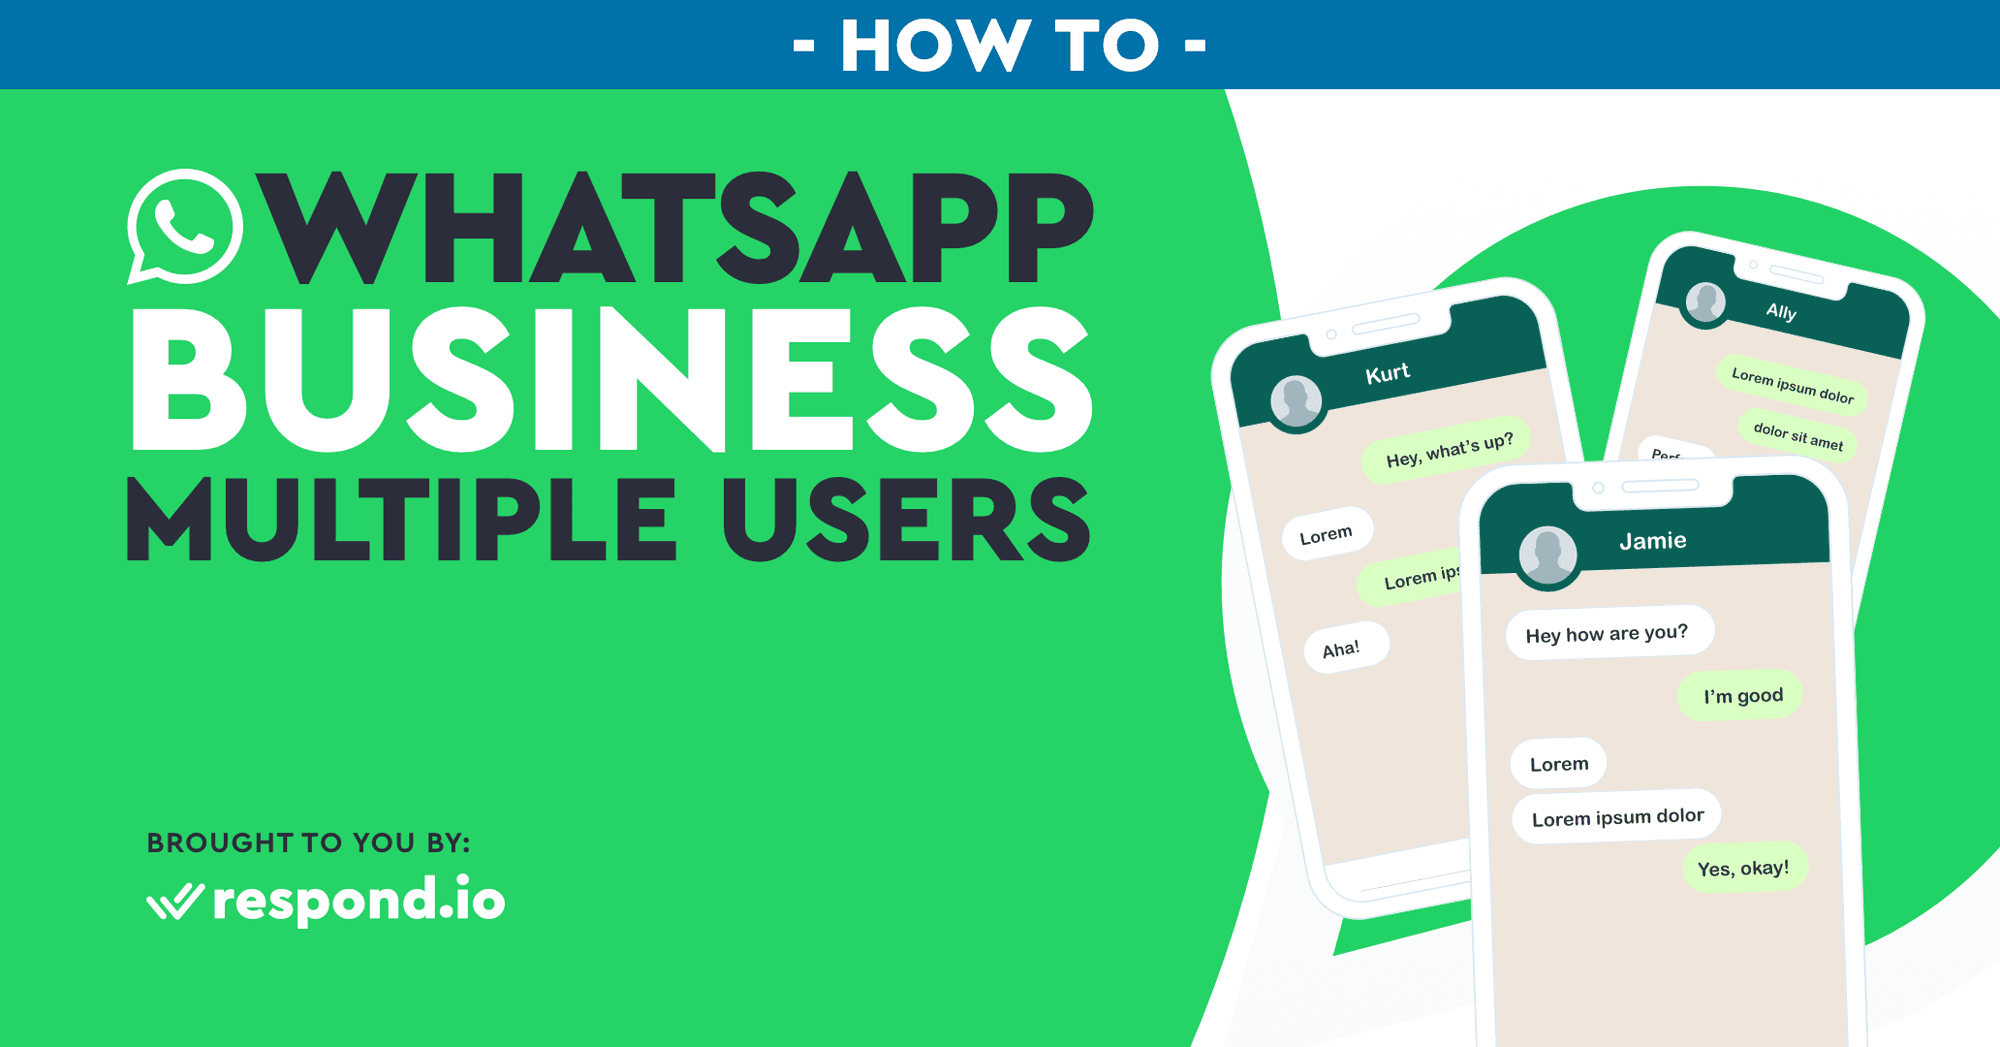 WhatsApp Business Multiple Users: A How-To Guide (March 2021)